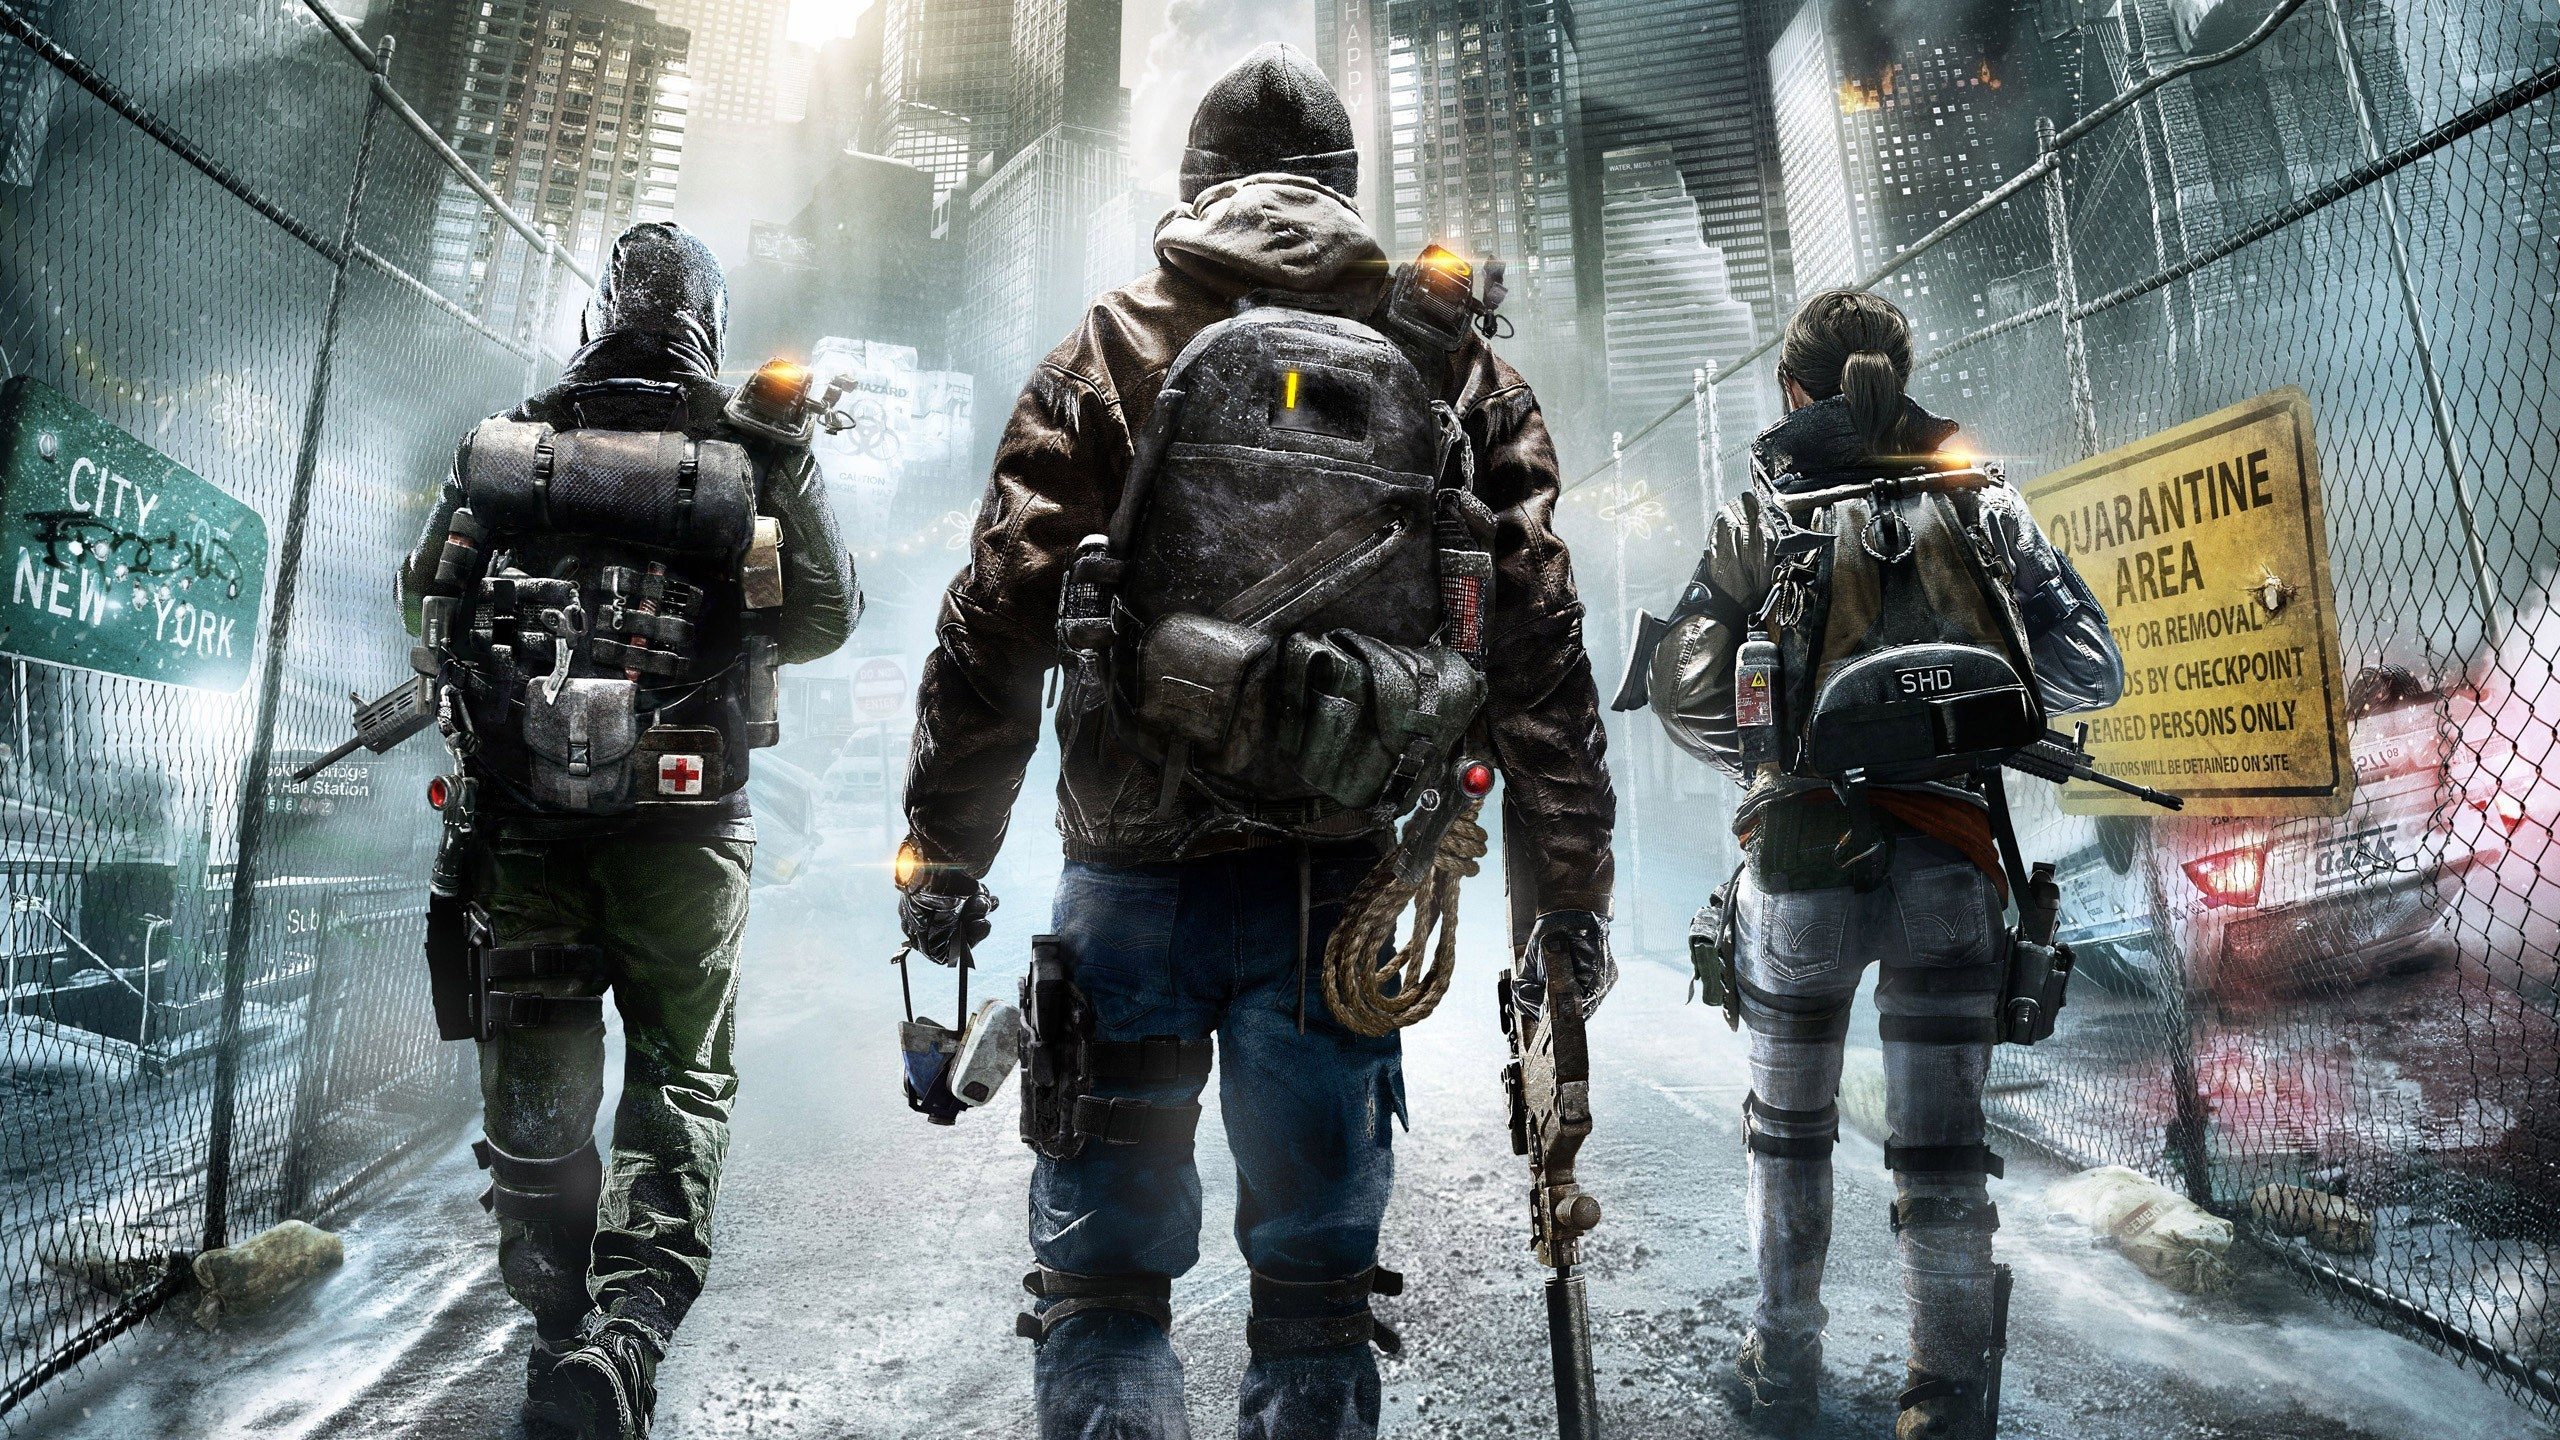 Tom Clancys The Division 2015 Game Desktop Wallpaper. November 27, 2014. in  Wallpapers …